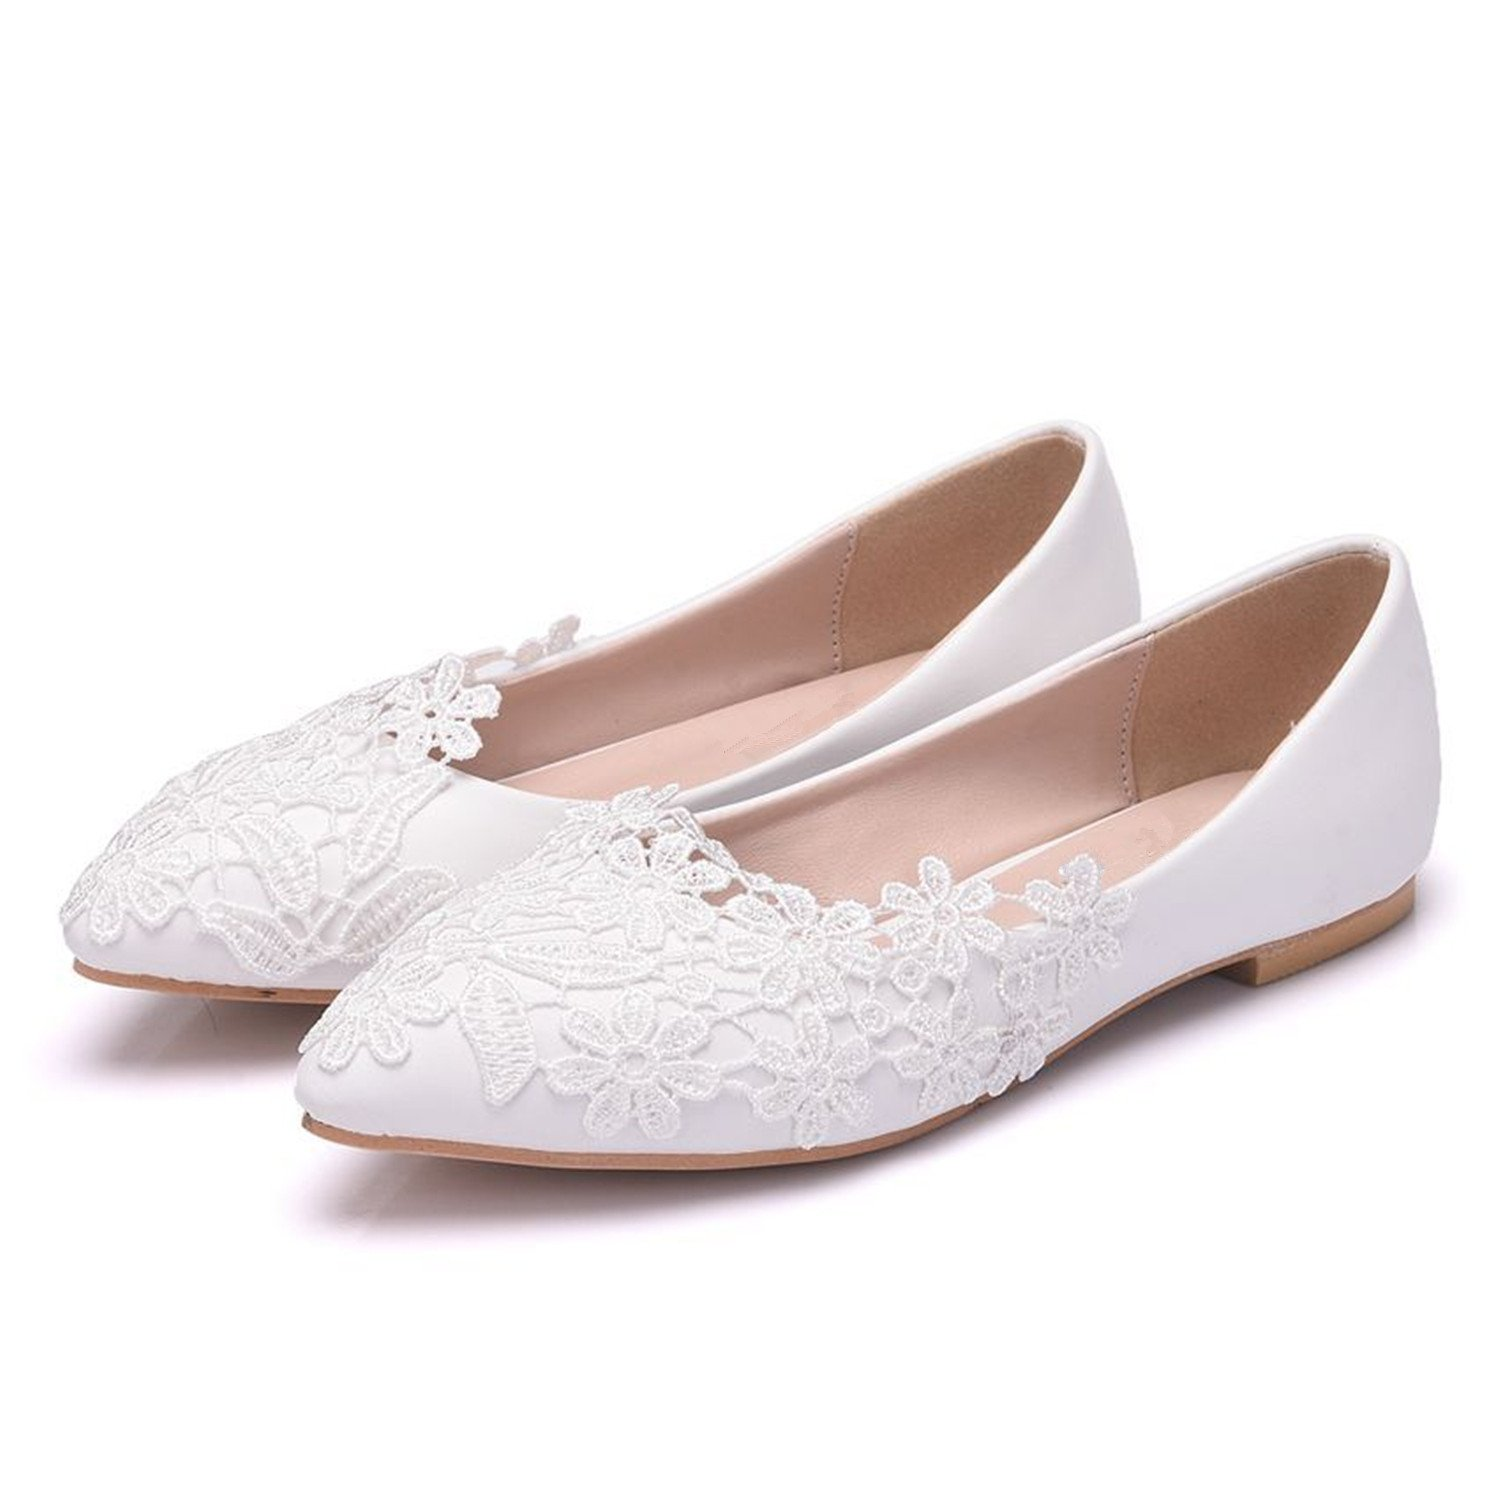 Aiybao White Lace Wedding Bride Shoes for Bride Comfort Bride Wedding Shoes Wedding Bridal Dresses B07BGZCW75 8 B(M) US|Lace 430b61